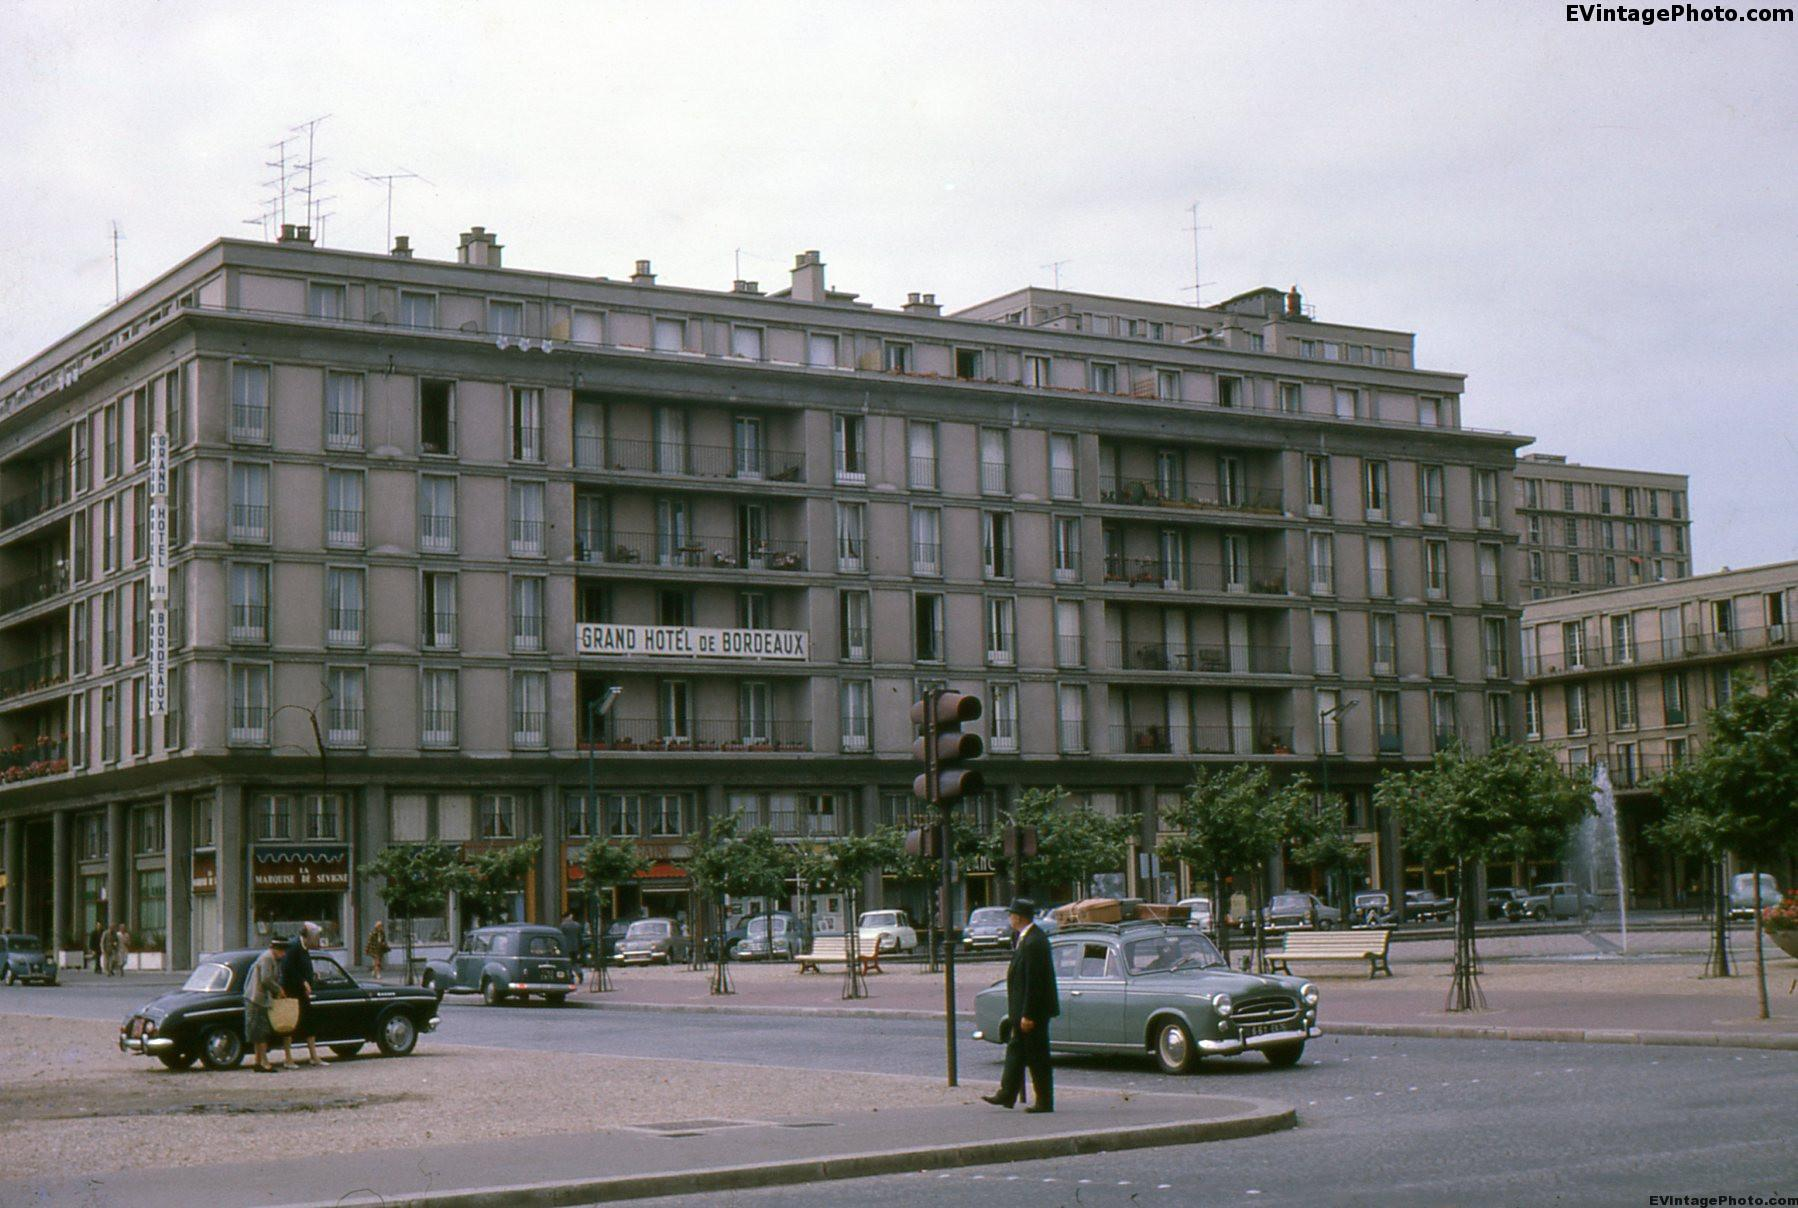 Grand hotel de bordeaux le havre france 1962 for Hotels near bordeaux france